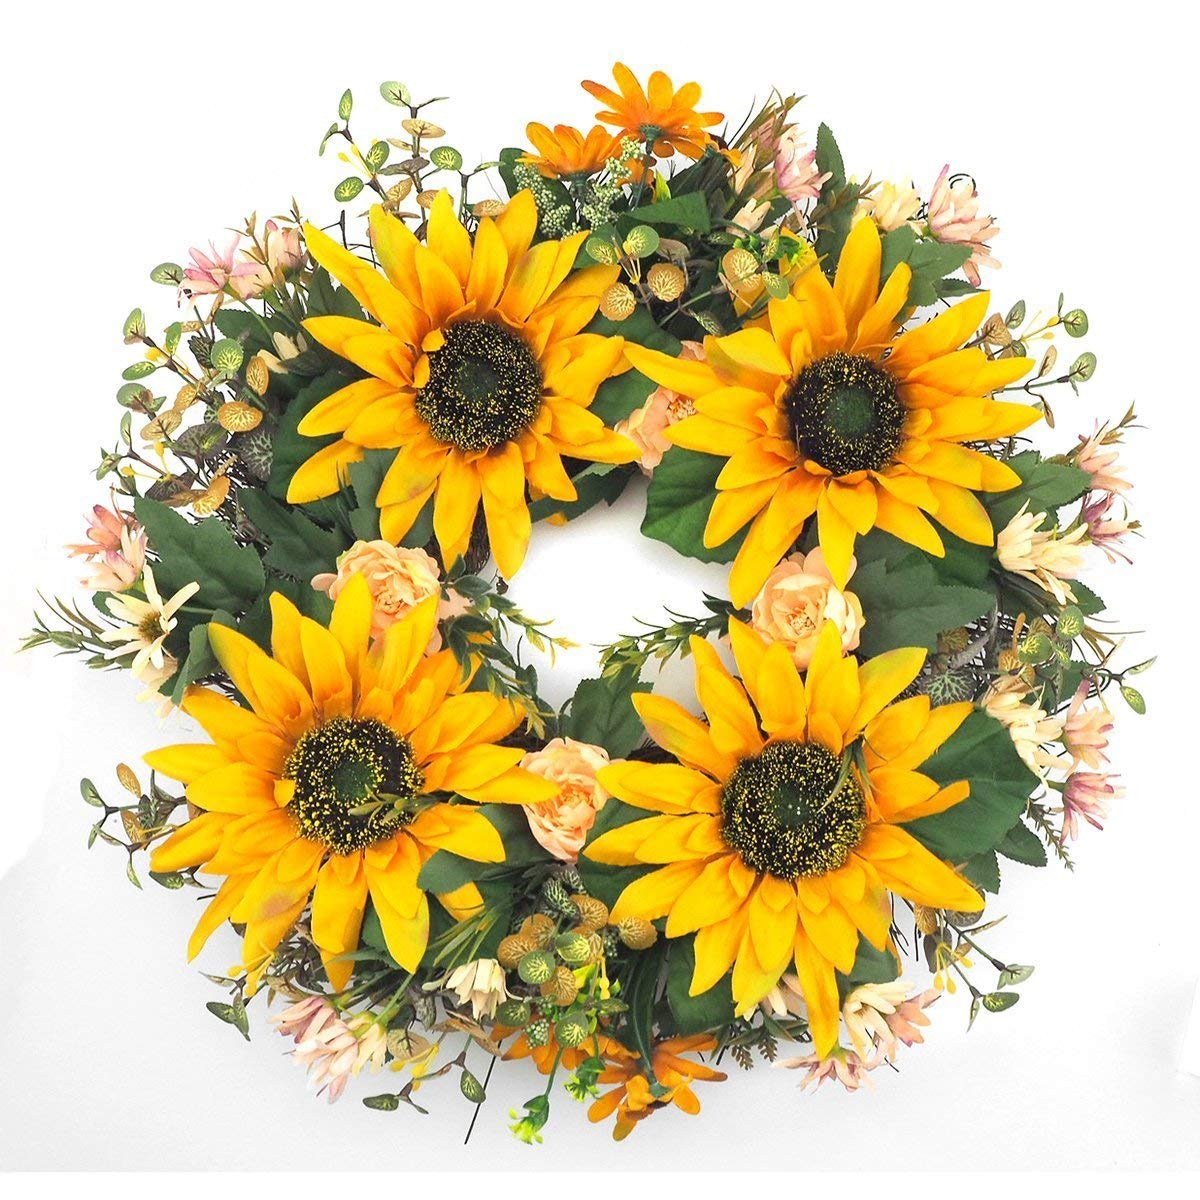 Emlyn Silk Sunflower Spring Door Wreath 19 Inch- Beautiful Silk Front Door Wreath For Summer And Fall Wreath Display, Handcrafted With Care,Wedding, Home Decor